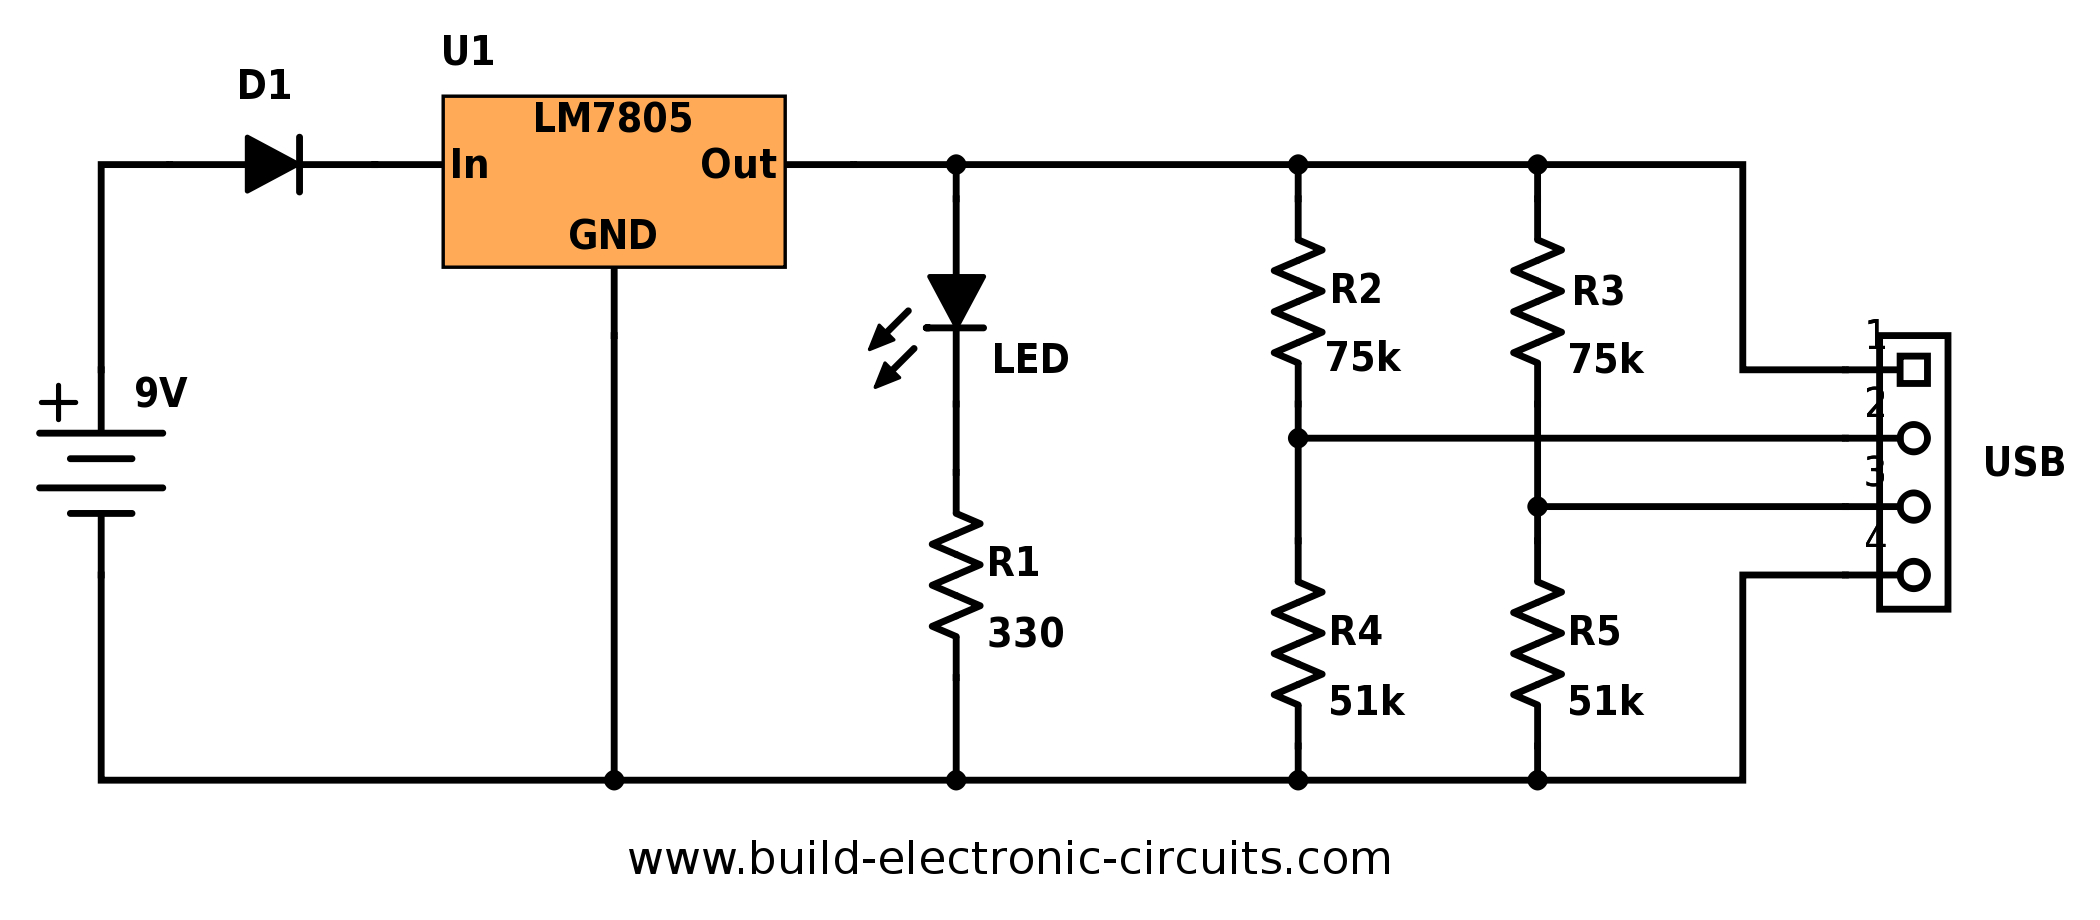 Portable Usb Charger Circuit - Build Electronic Circuits - Explain Usb Wiring Diagram